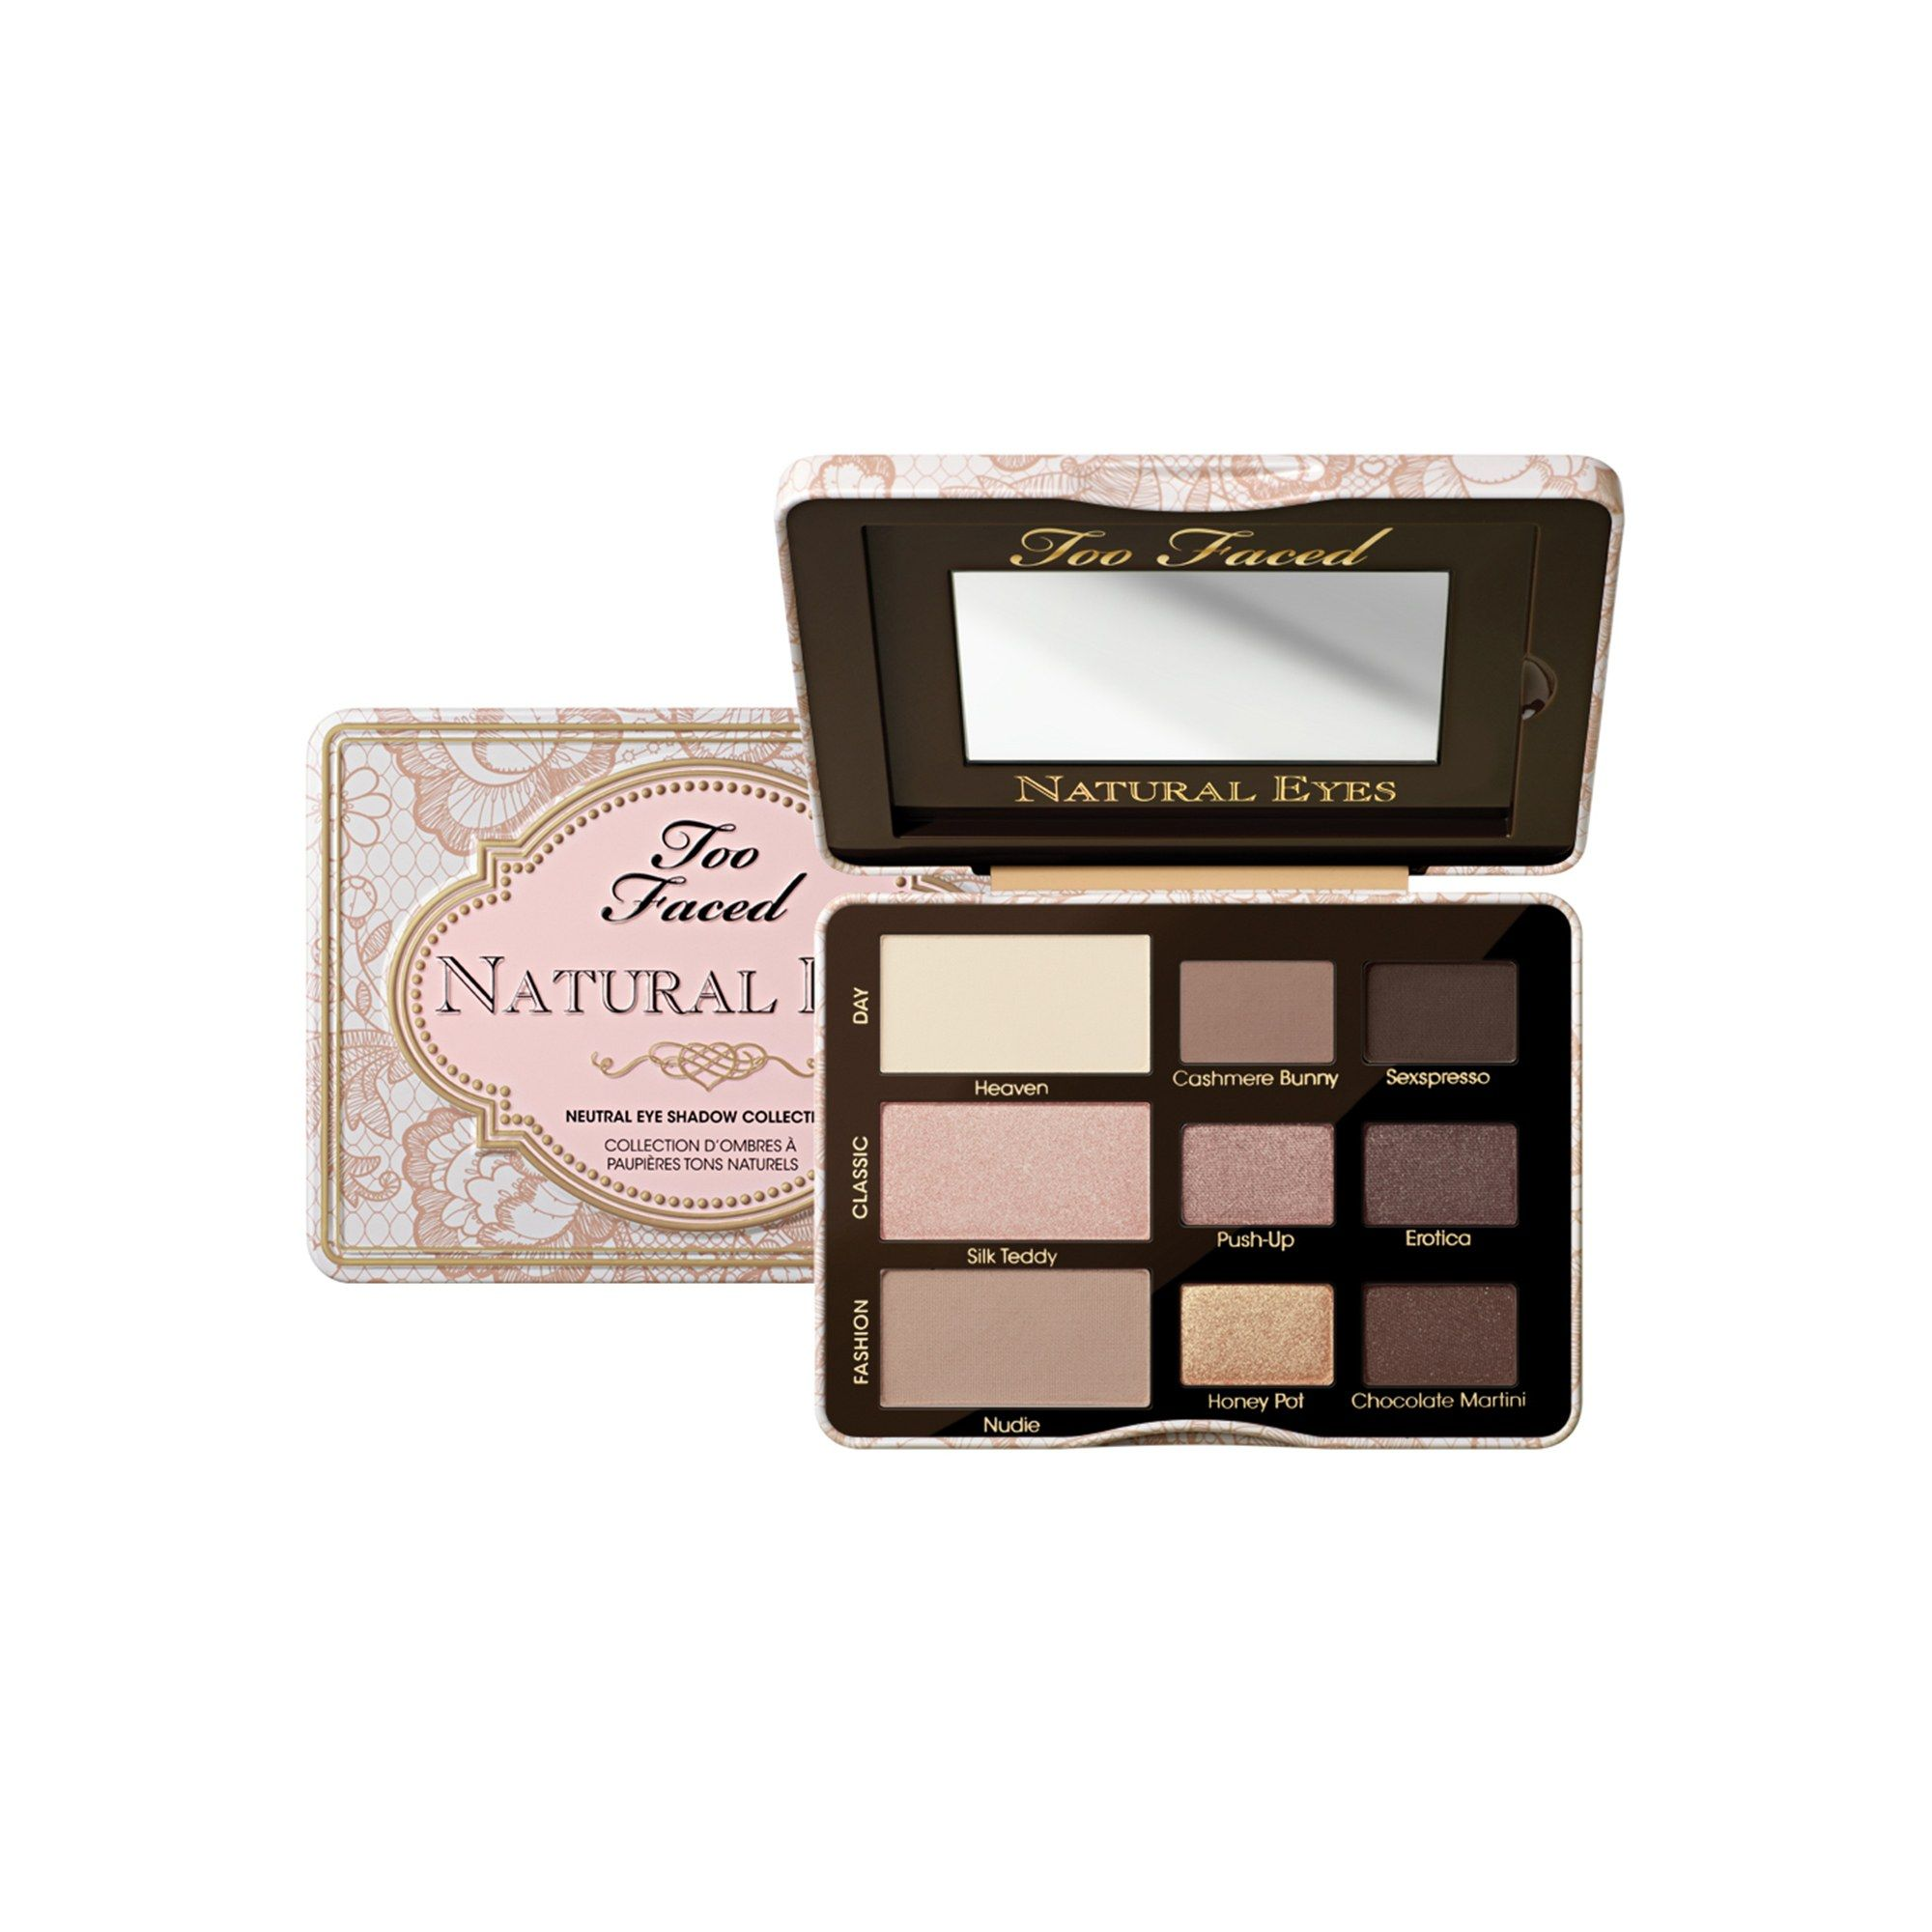 The 7 Best Mini Eye Palettes For Traveling According To Reddit